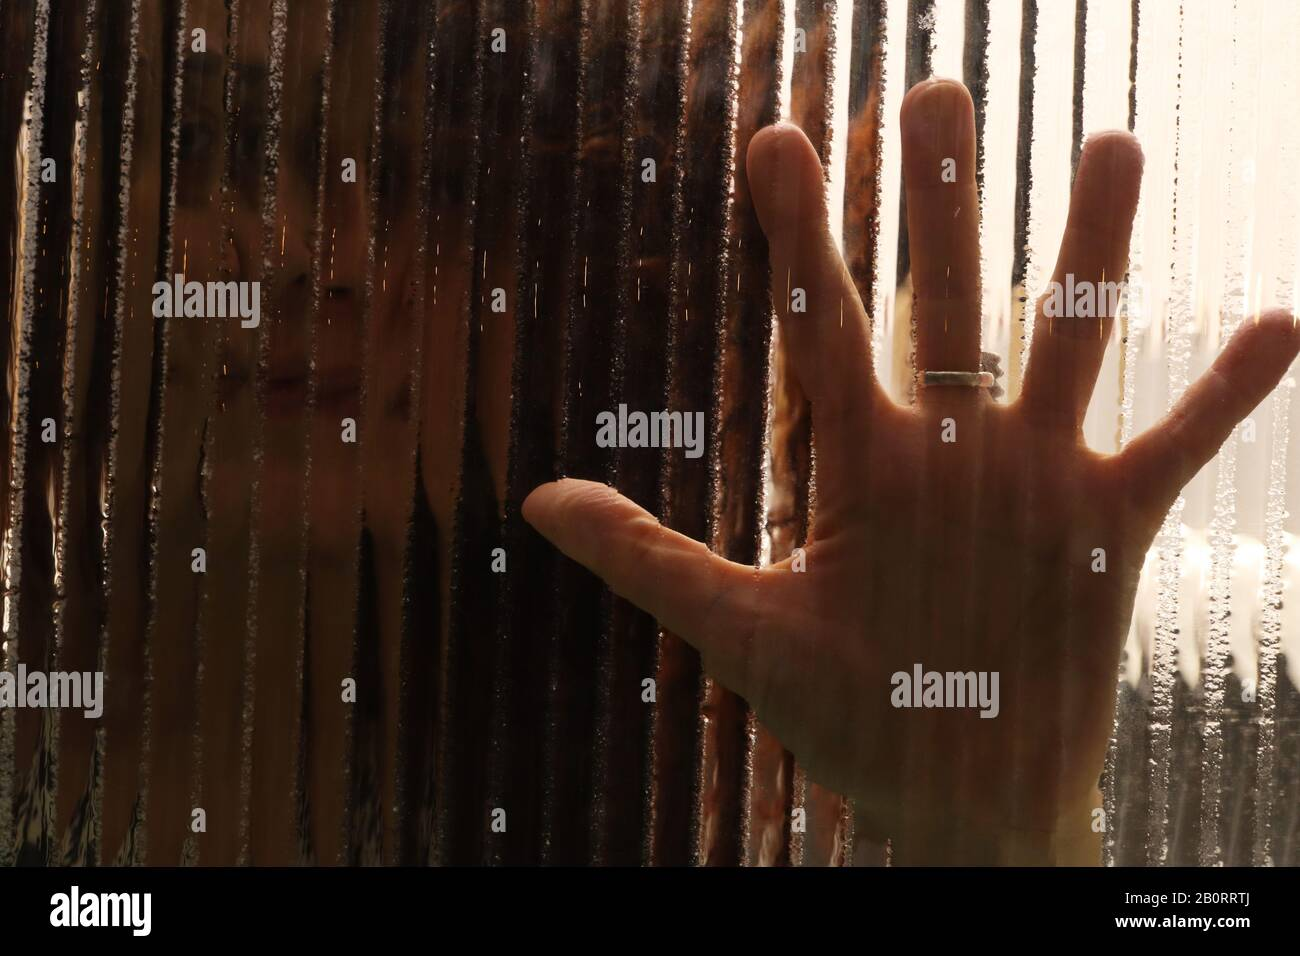 Creepy scary image of girl behind glass with palms of hands on textured glass Stock Photo